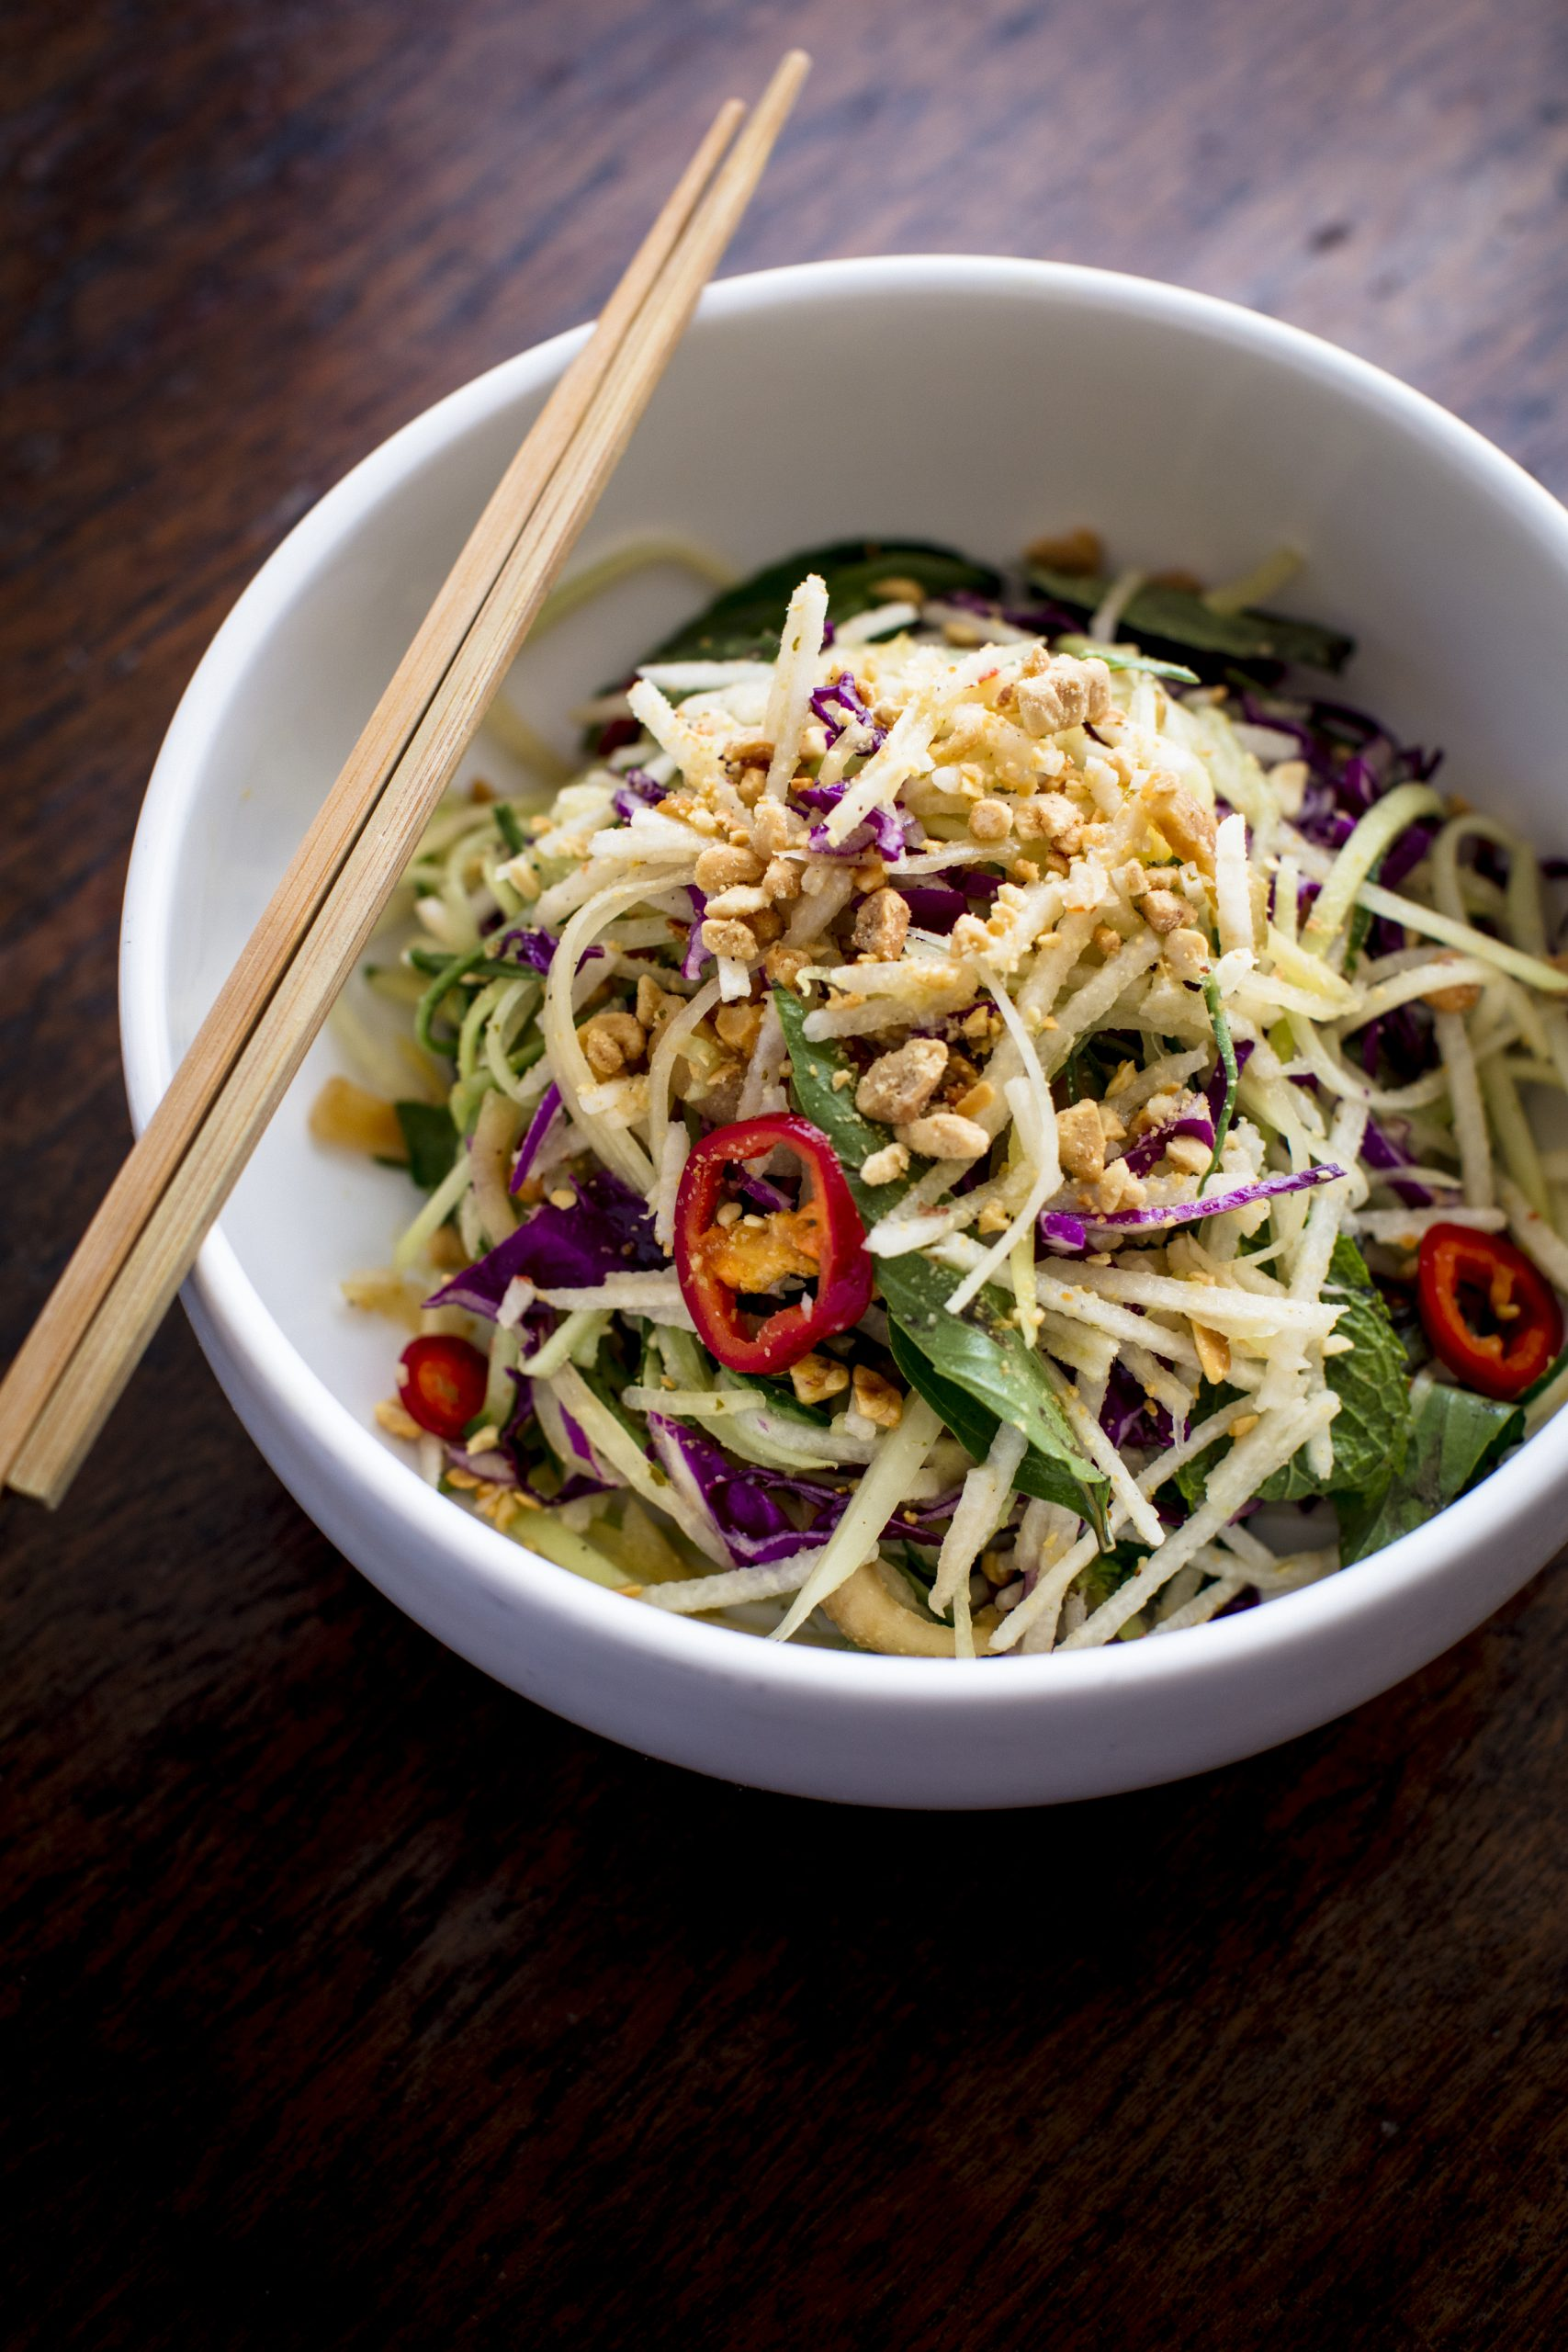 salad in a bowl with chopsticks